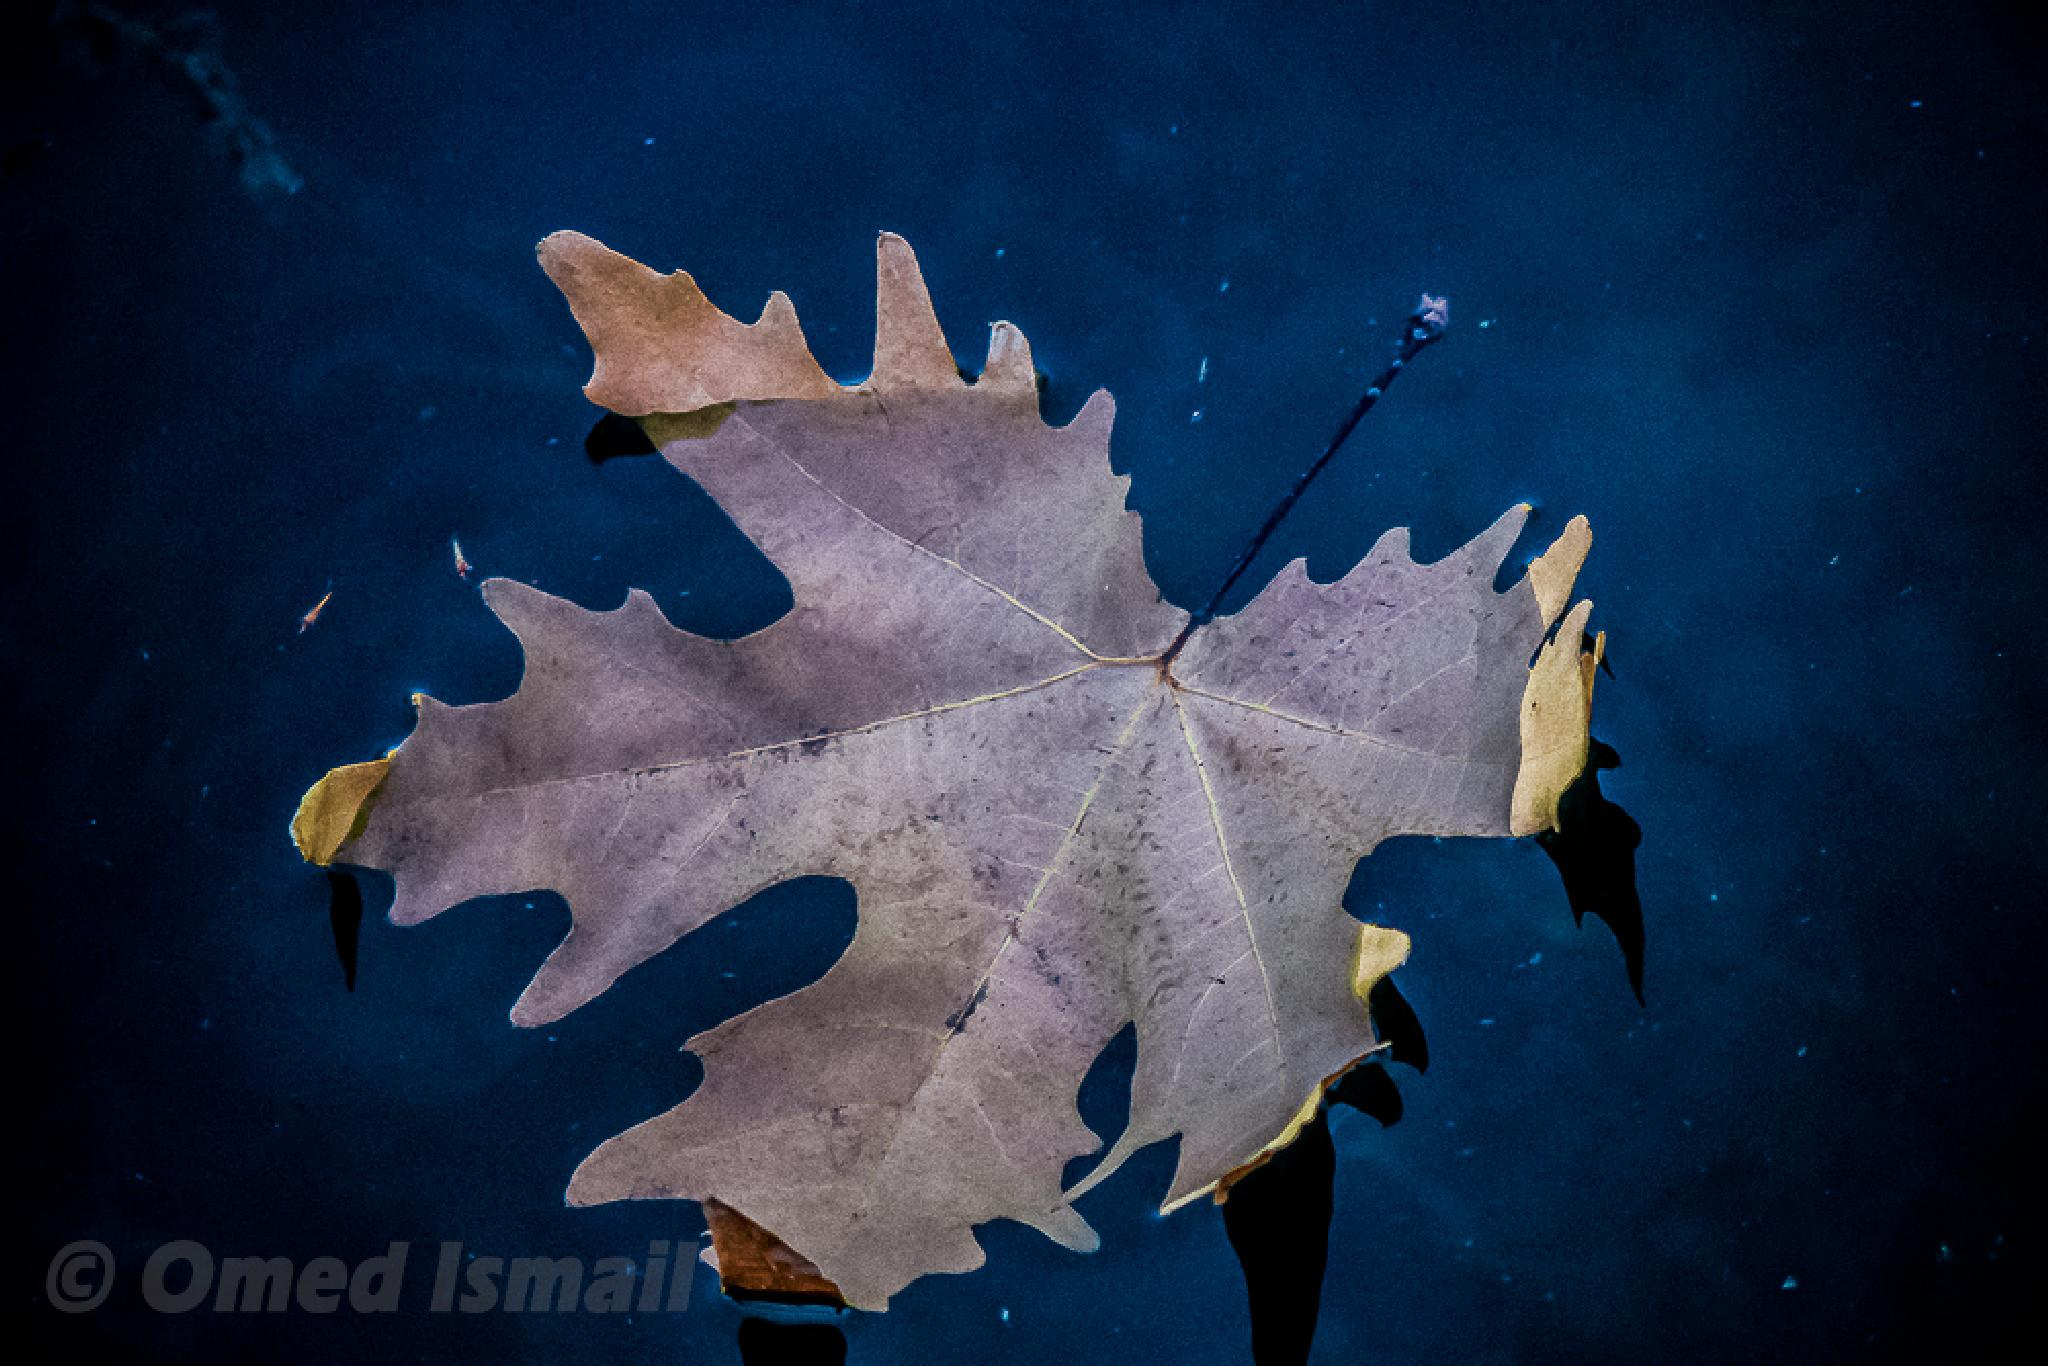 Leaf & Water by Omed Ismail